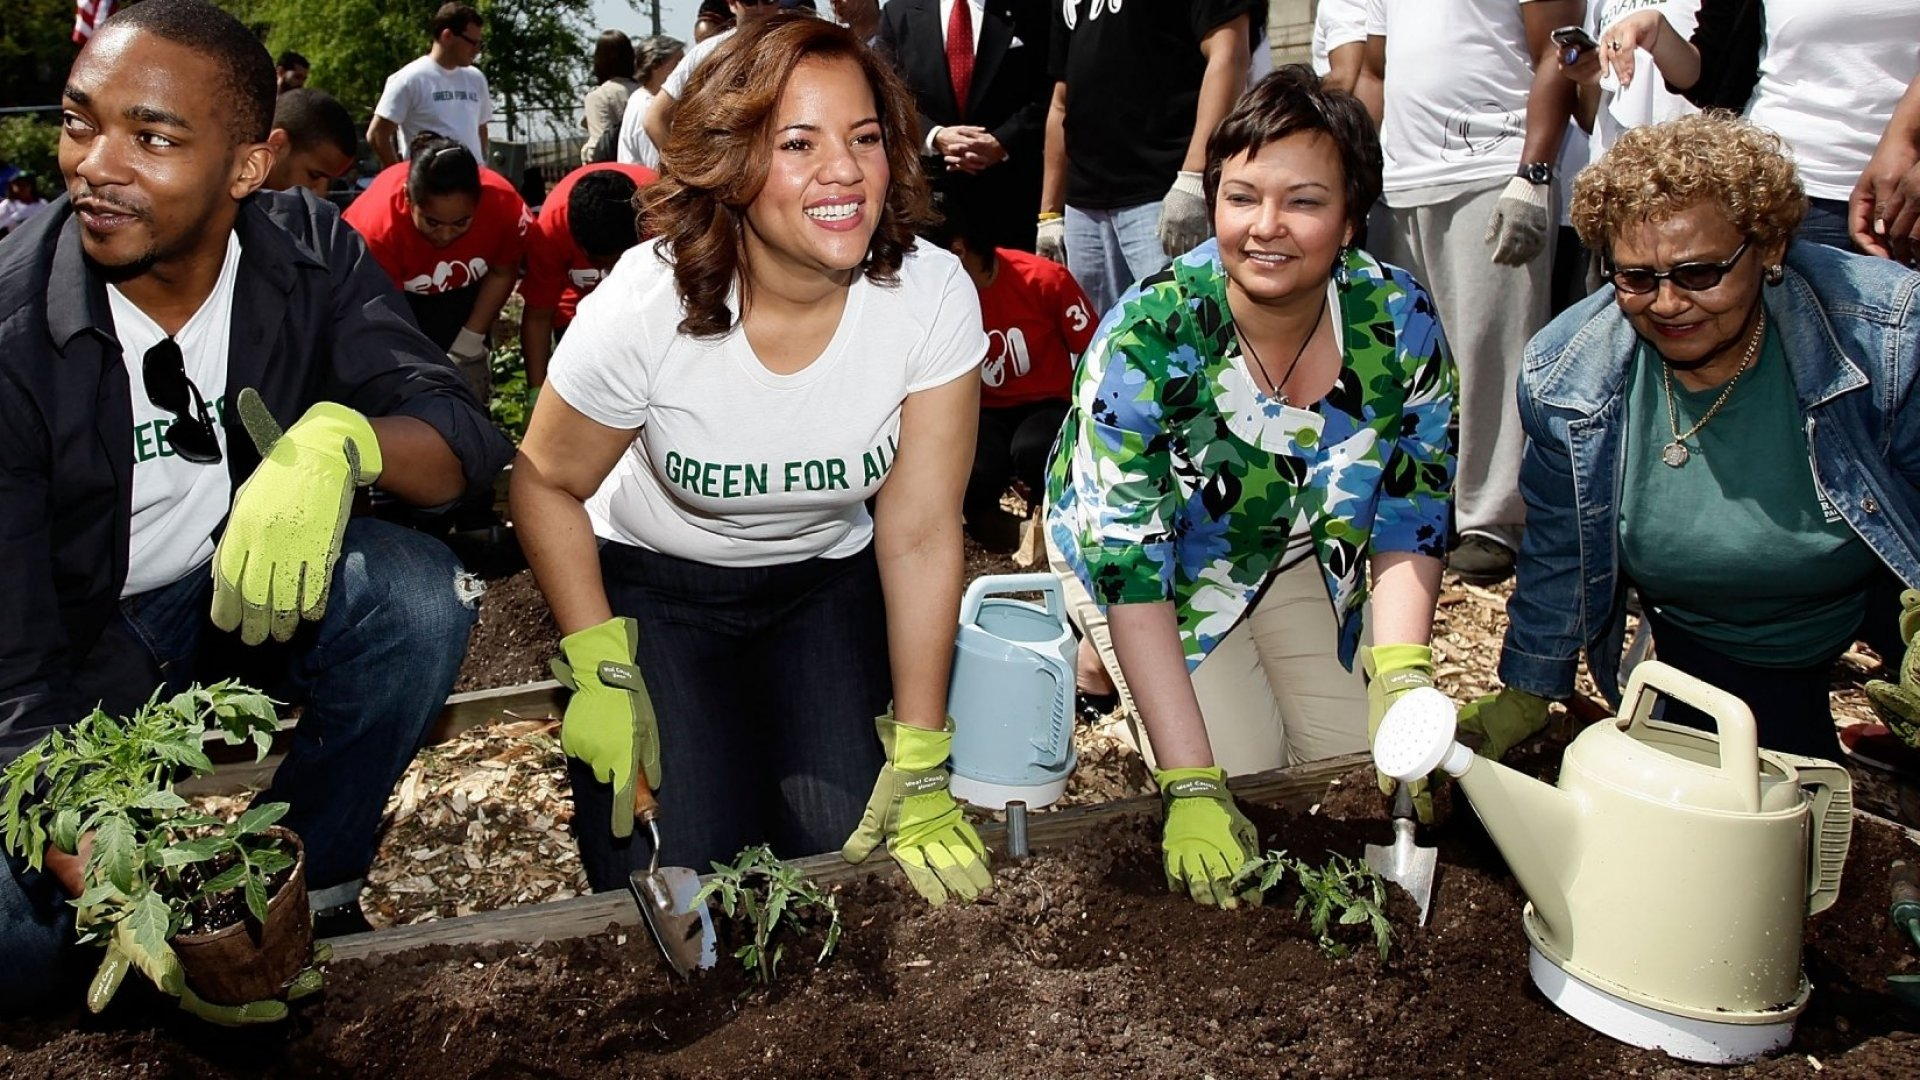 Phaedra Ellis-Lamkins, in white shirt, spent years as a labor and social-justice advocate before joining a tech startup. Here, as CEO of Green For All, an antipoverty organization, she participates in an Earth Day 2010 event with actor Anthony Mackie and former EPA administrator Lisa Jackson, among others. (Photo by Joe Kohen/WireImage)